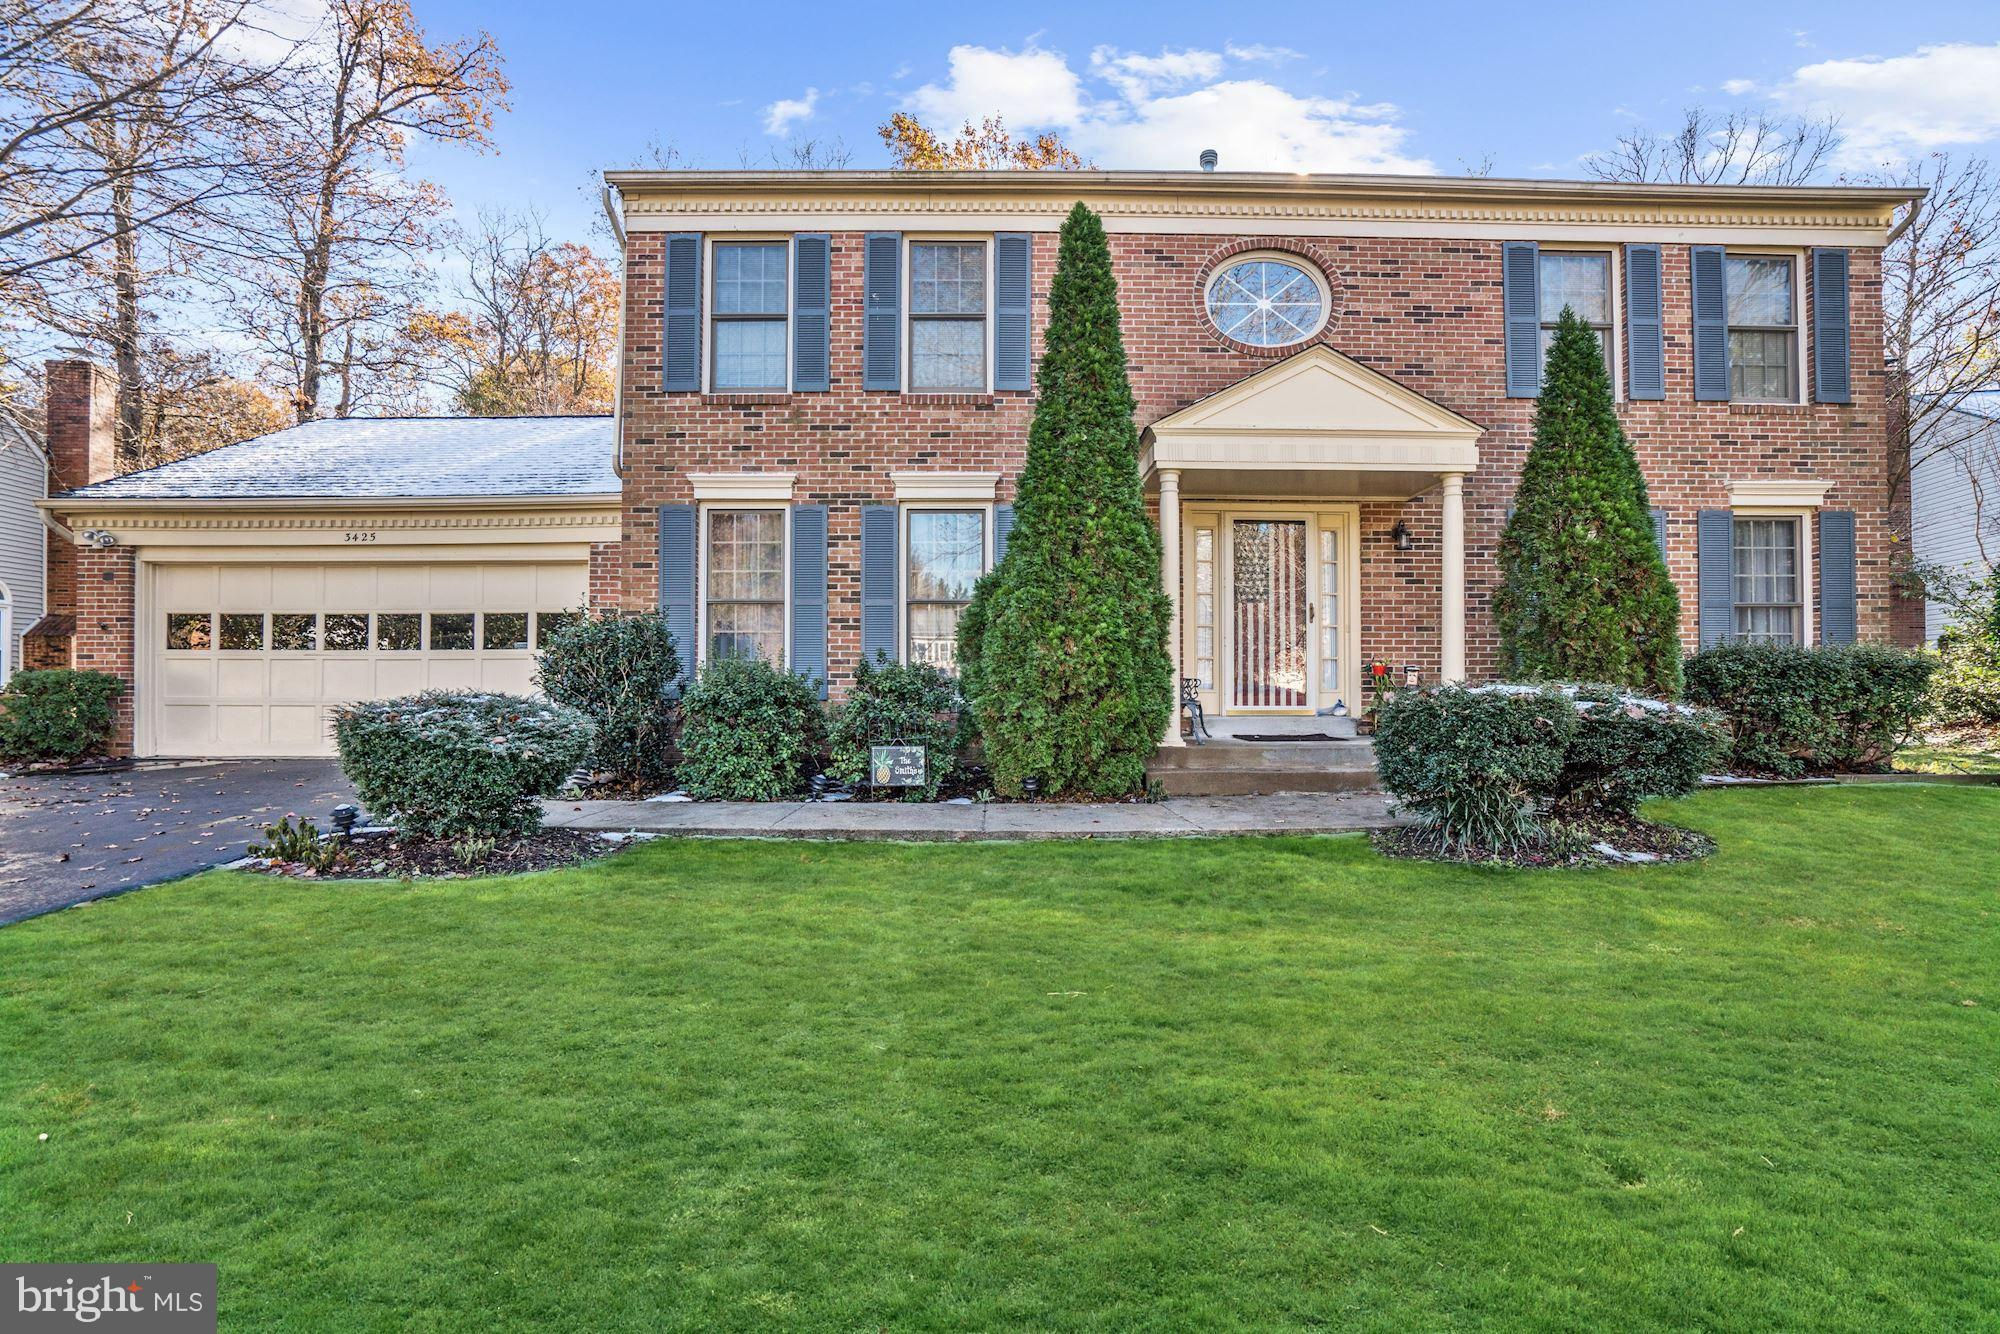 This beautiful and spacious colonial has been beautifully maintained.  Aesthetic landscaping adds to the curb appeal, and attractive details await inside. Enter the main level and appreciate the gleaming hardwood floors, a bright living room to the right, and to the left a spacious dining room perfect for large gatherings and entertaining. The kitchen features sparkling granite countertops and eat-in kitchen space. Sunlight bathes the room from the skylight and beautiful bay window that provides a beautiful view to the large backyard and wooden deck. Upstairs includes a huge master suite and 3 additional bedrooms.  The partially finished walkup basement is all ready for a full bath and includes a built-in safe. This home is sure to wow you with its gorgeous details - come see!